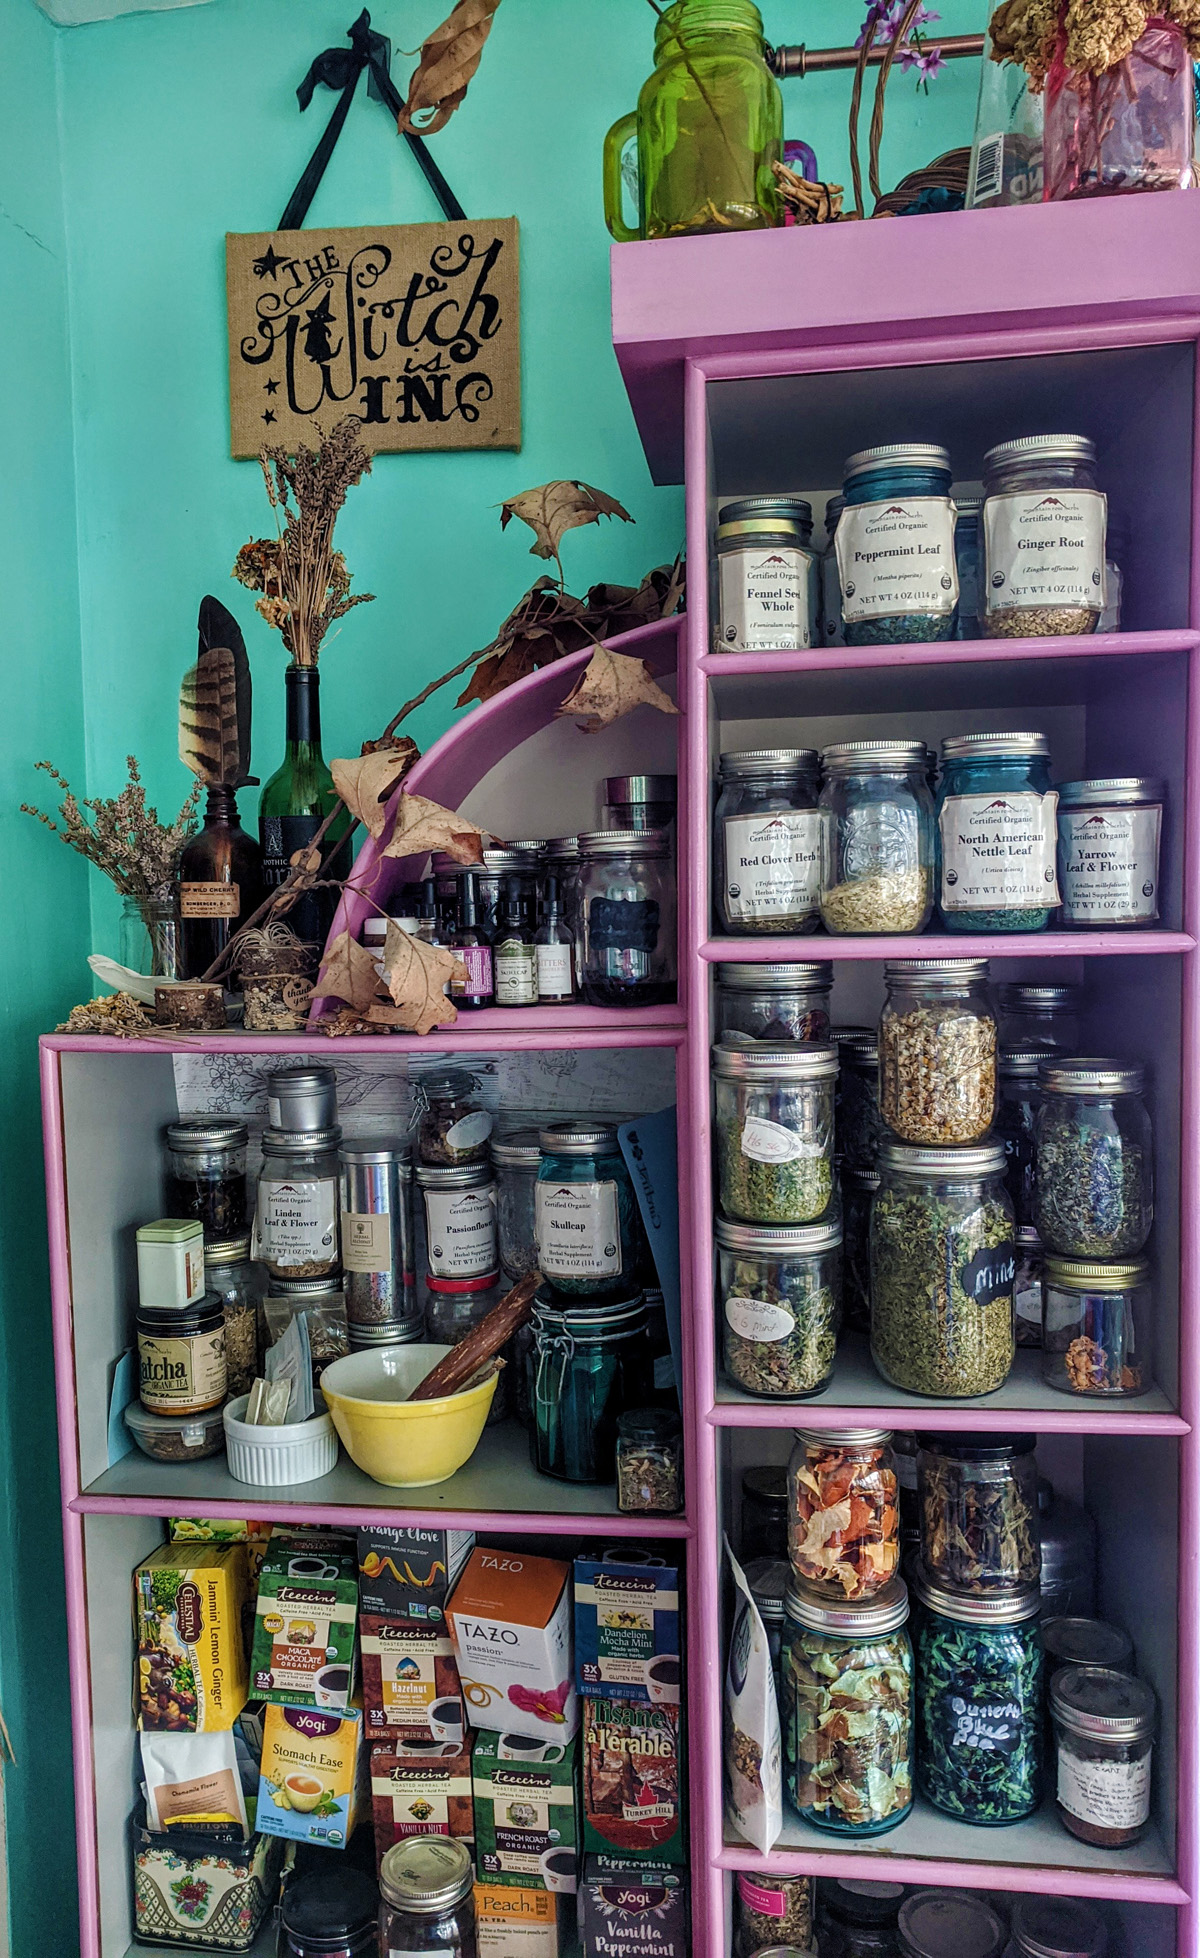 A purple shelf system holds jars of loose leaf tea as well as other pantry items.